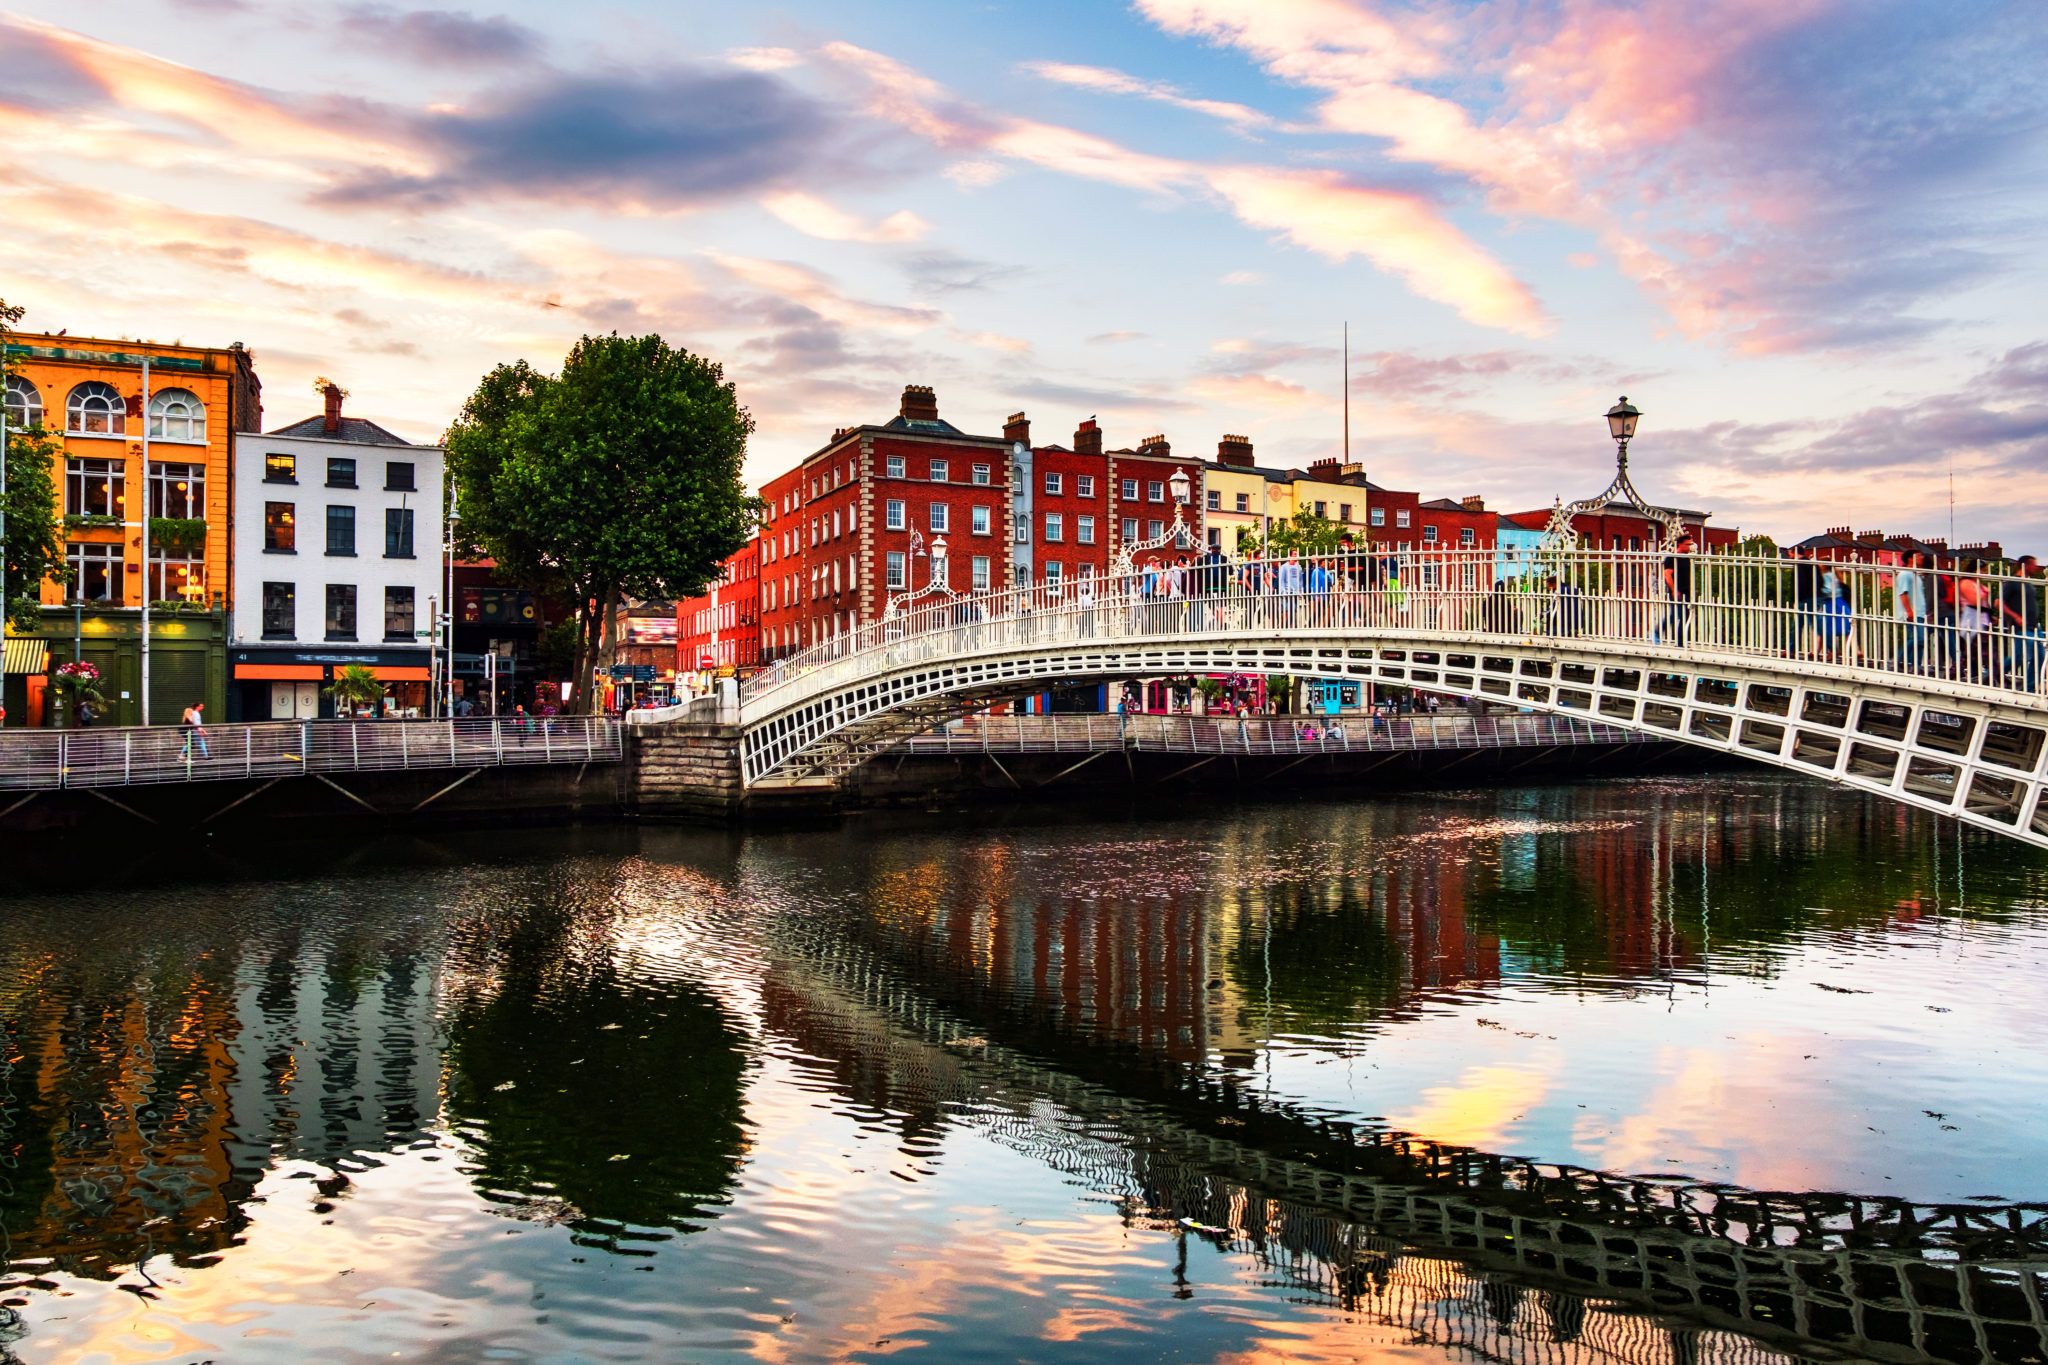 Die berühmte Ha Penny Bridge in Dublin